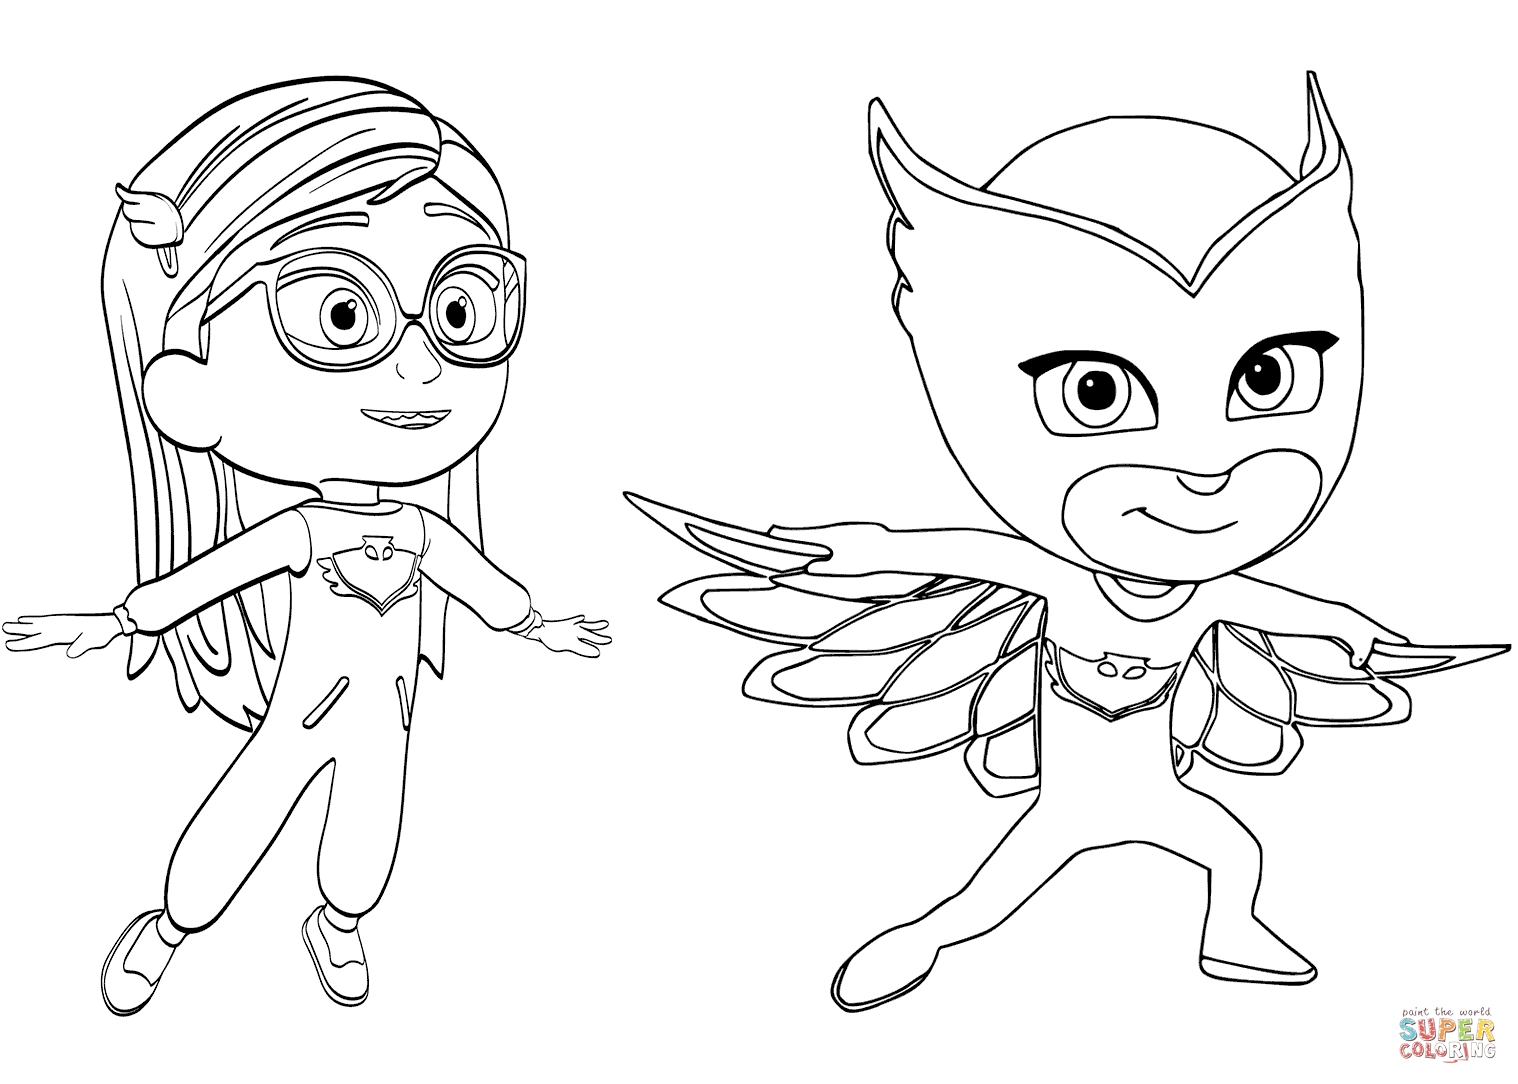 owlette coloring page - pajama hero amaya is owlette from pj masks